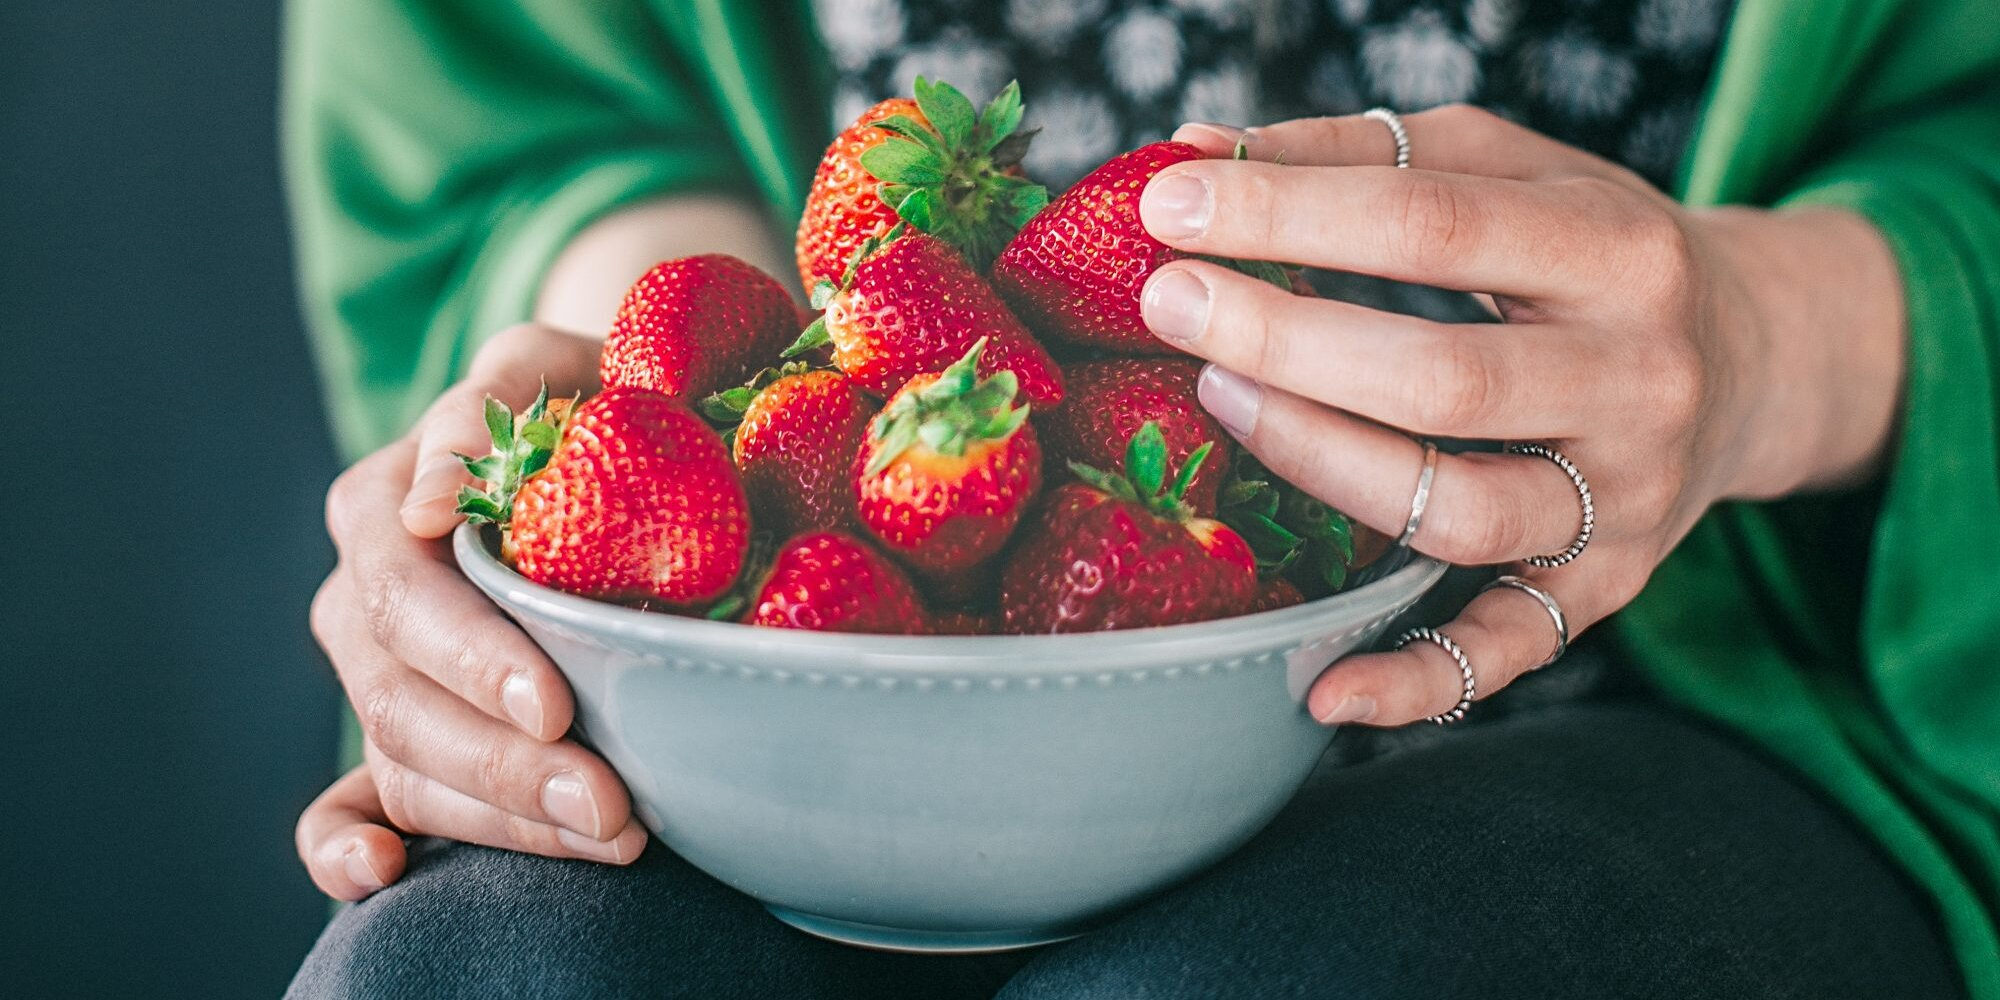 New Research Shows That Eating Foods High in Flavonoids Can Keep Your Mind Sharp Over Time